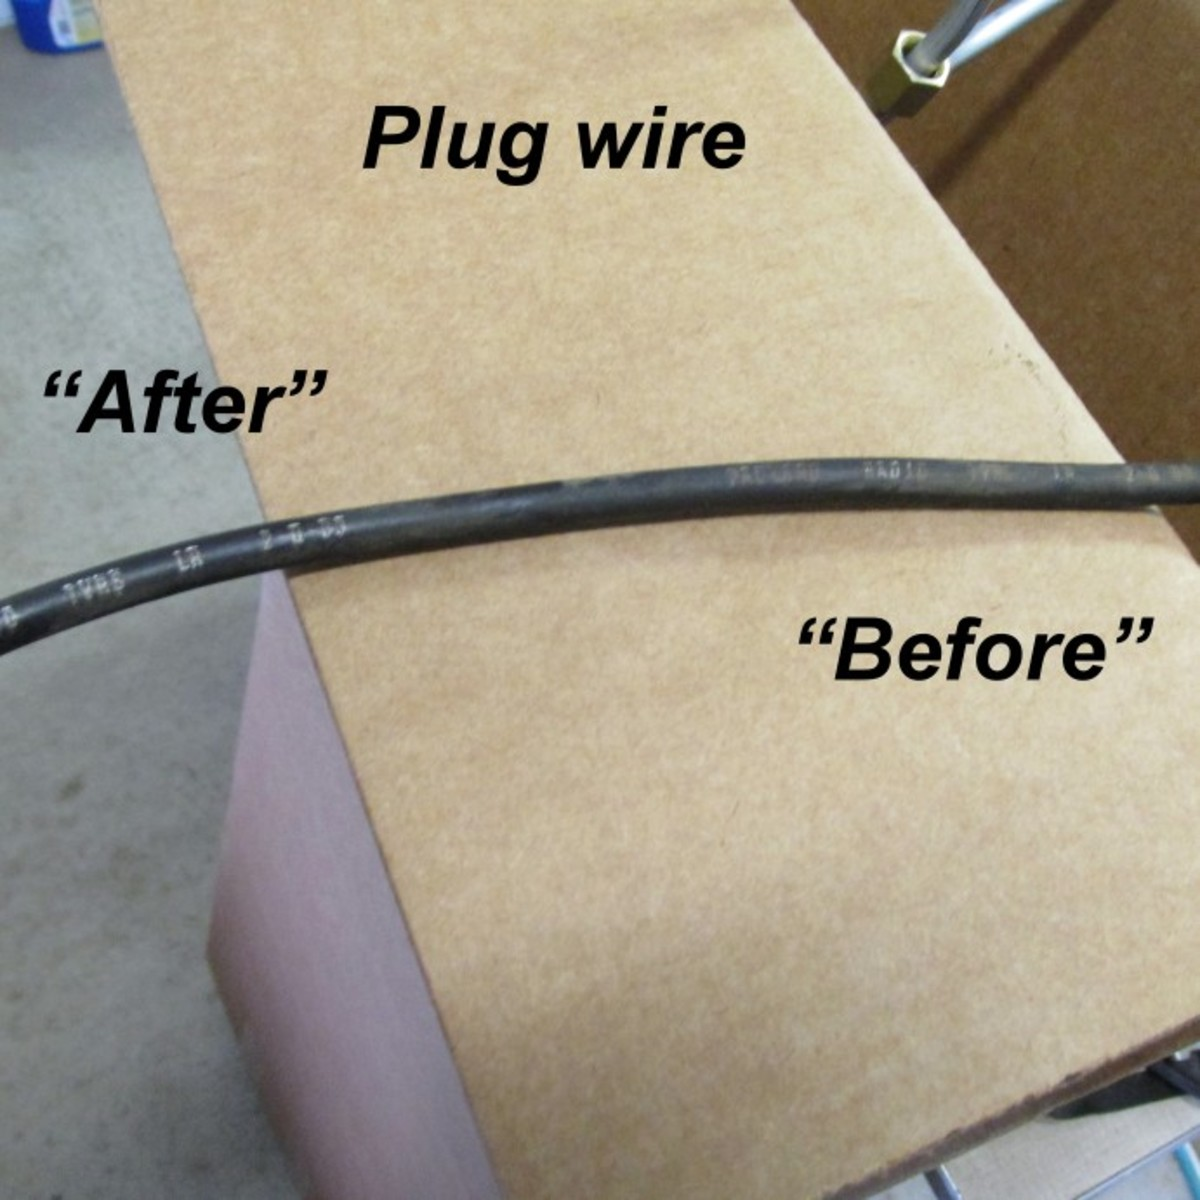 Leidich carefully cleaned the plug wires without damaging the print on each wire.